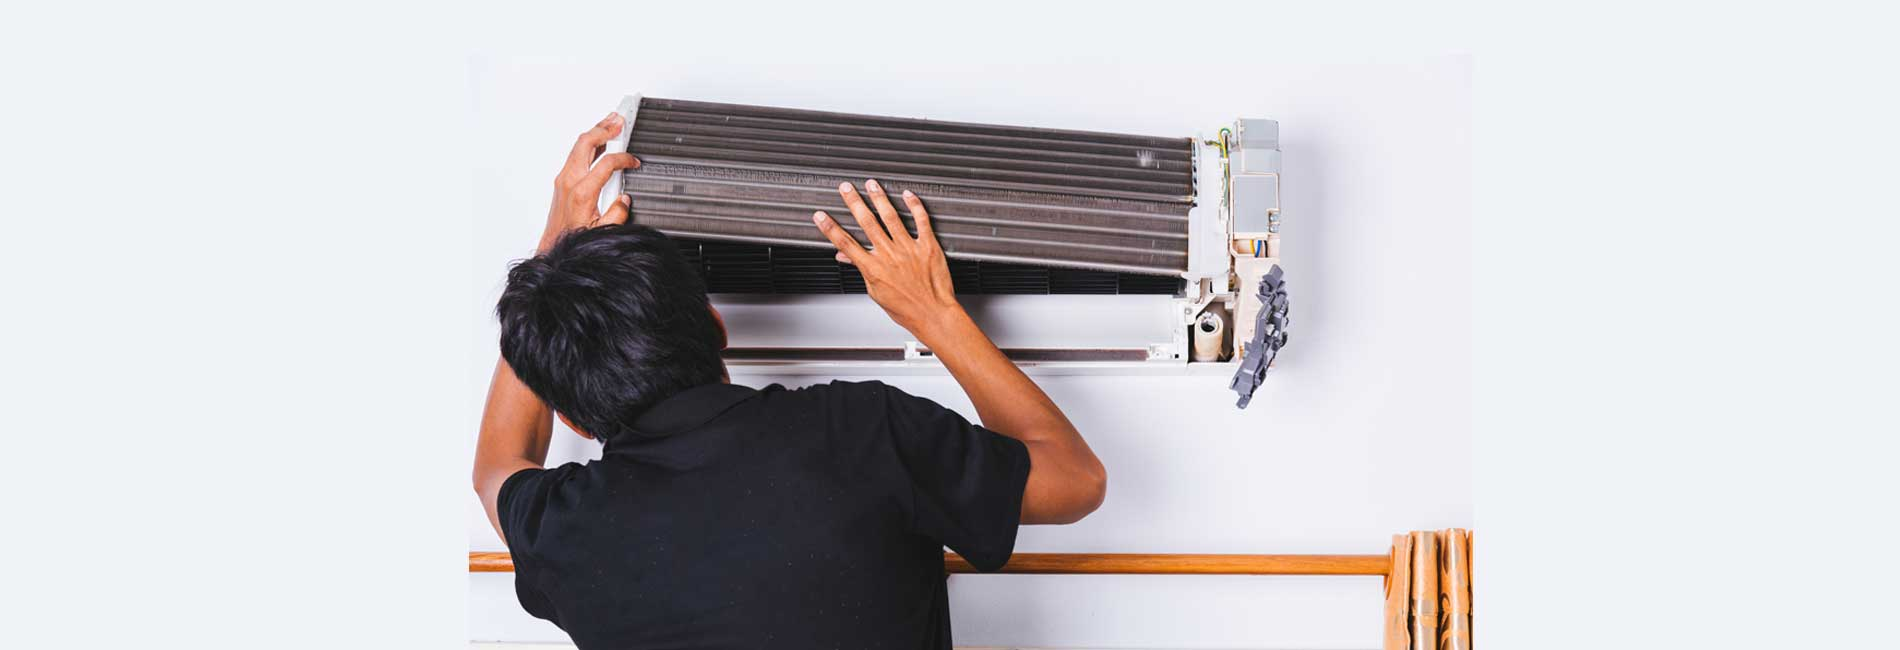 Panasonic AC Repair in Ashok Nagar